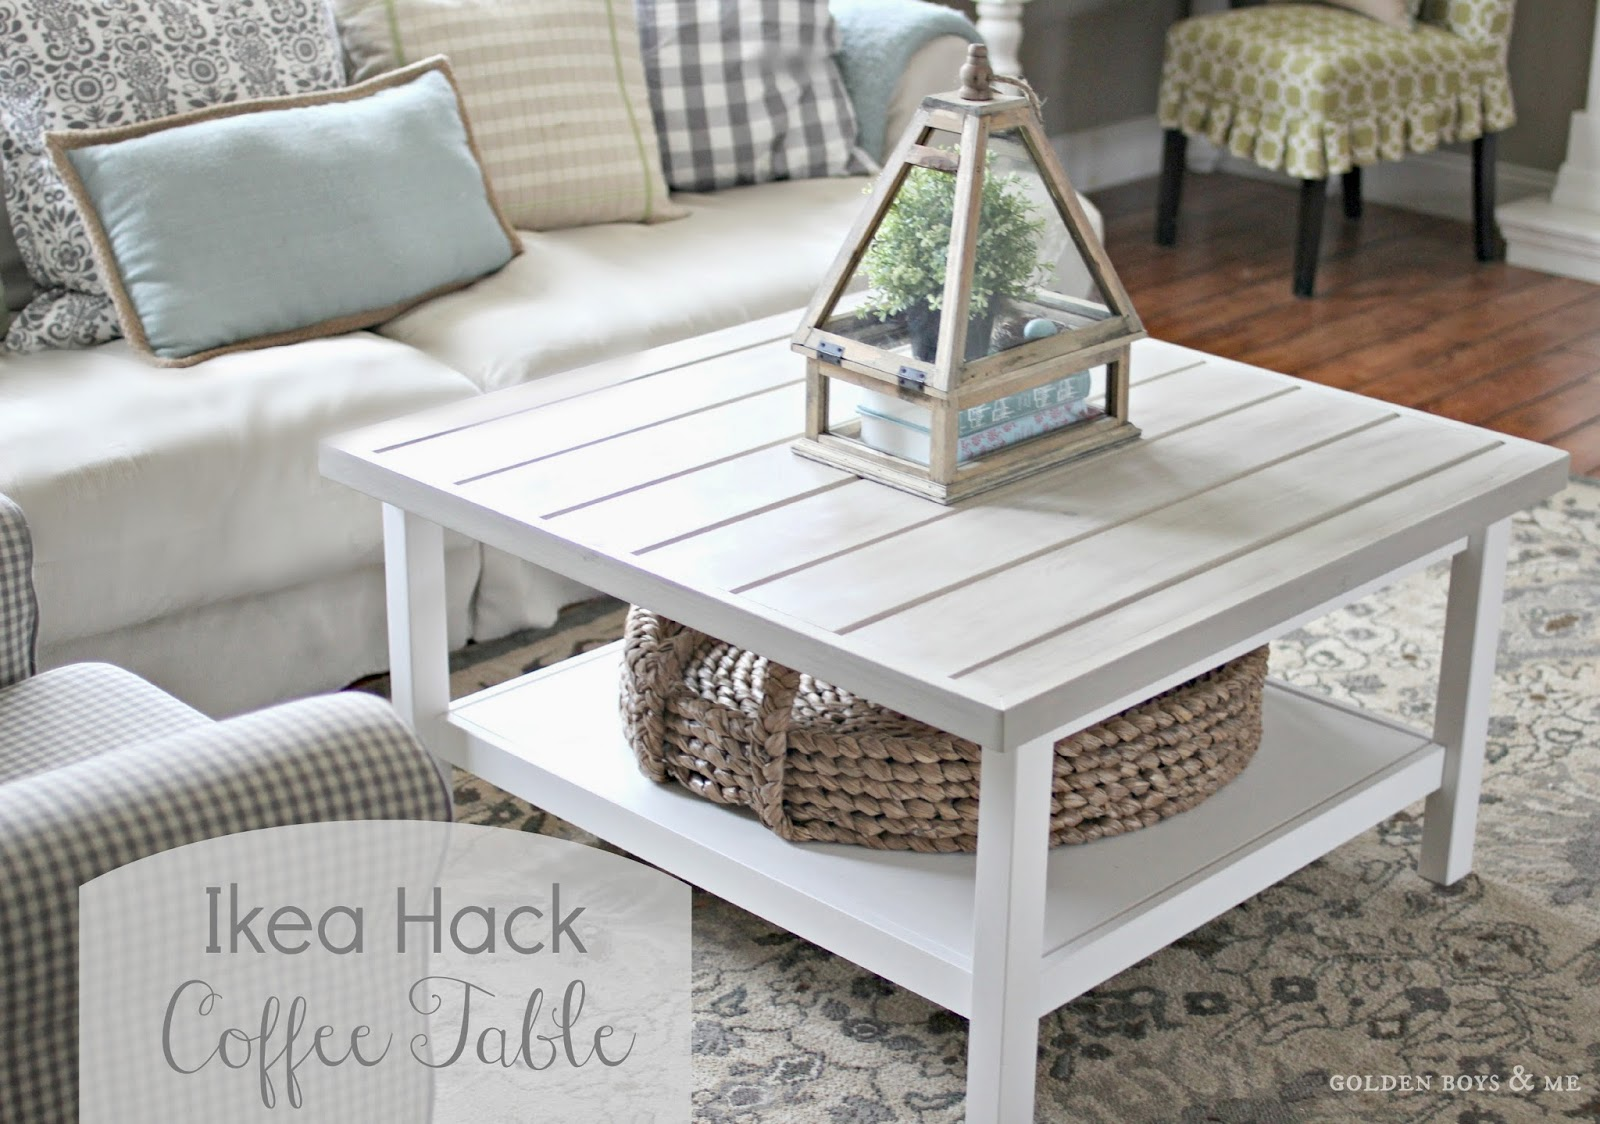 Ikea Hack Hemnes Coffee Table With Planked Top   Www.goldenboysandme.com